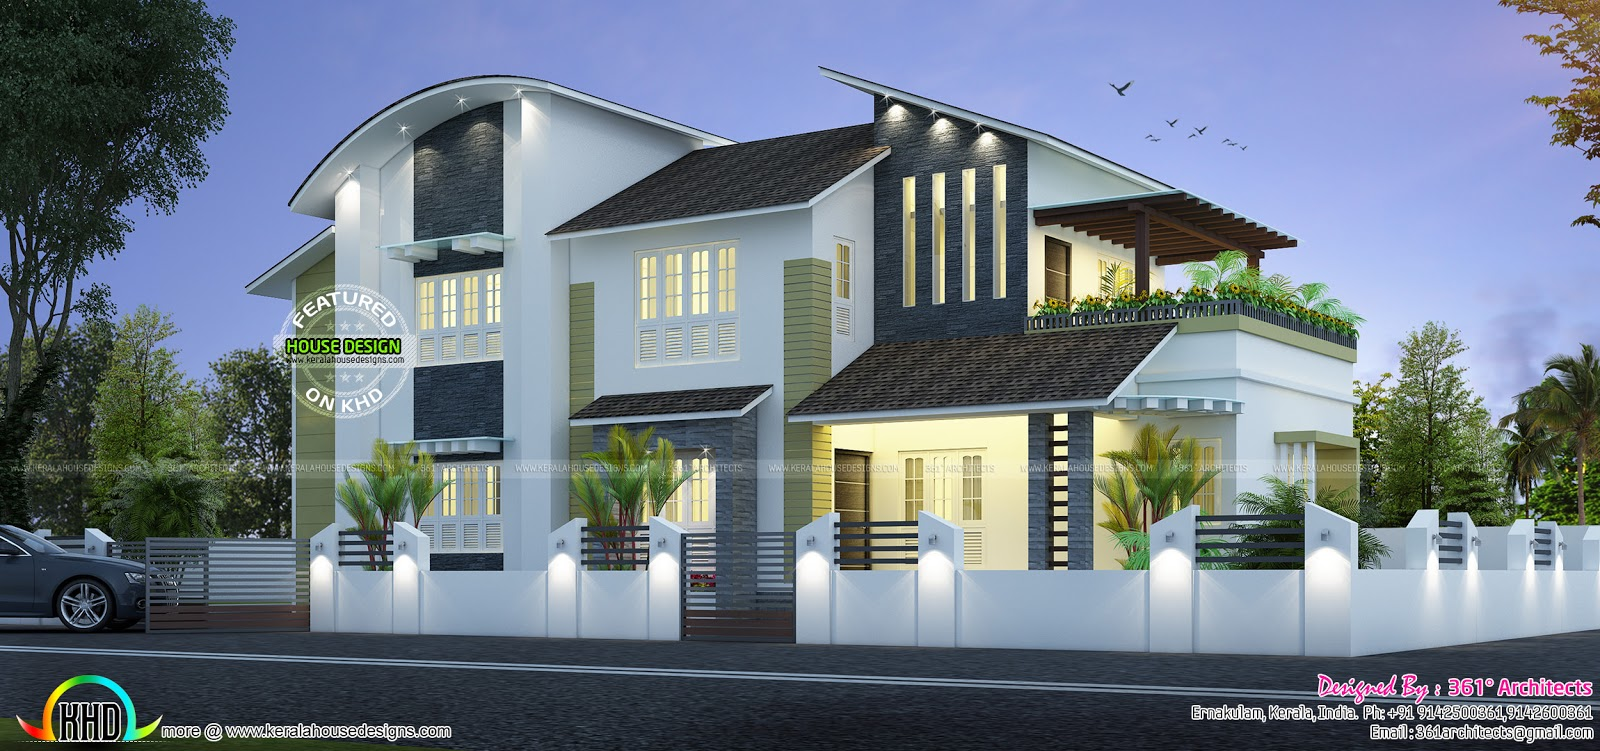 New modern house 35 lakhs kerala home design and floor plans for Modern kerala style house plans with photos